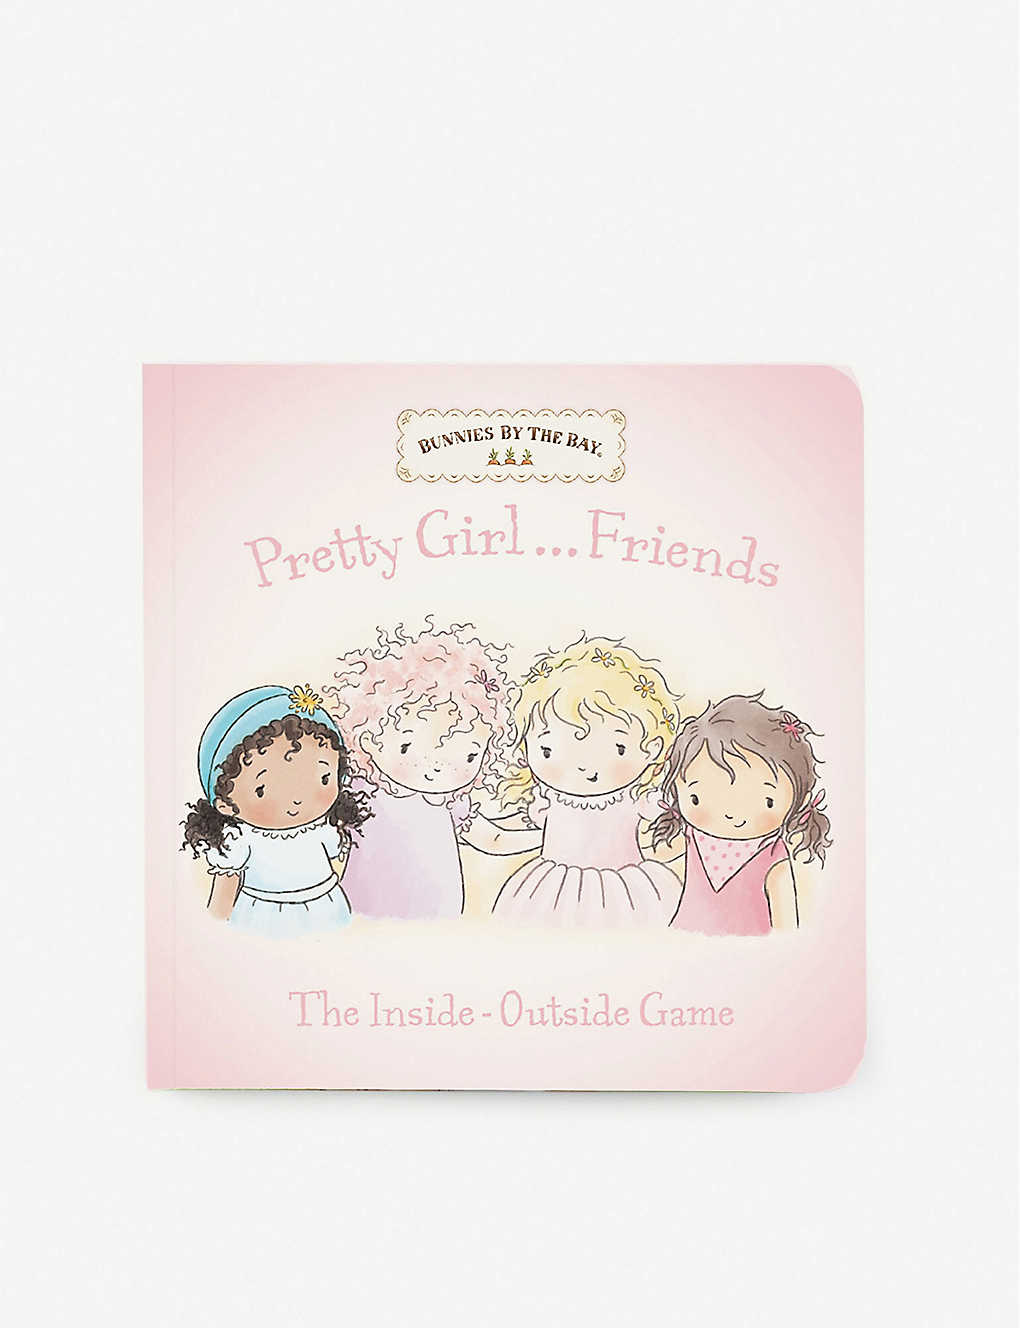 BUNNIES BY THE BAY: Pretty Girl Friends: The Inside-Outside Game board book